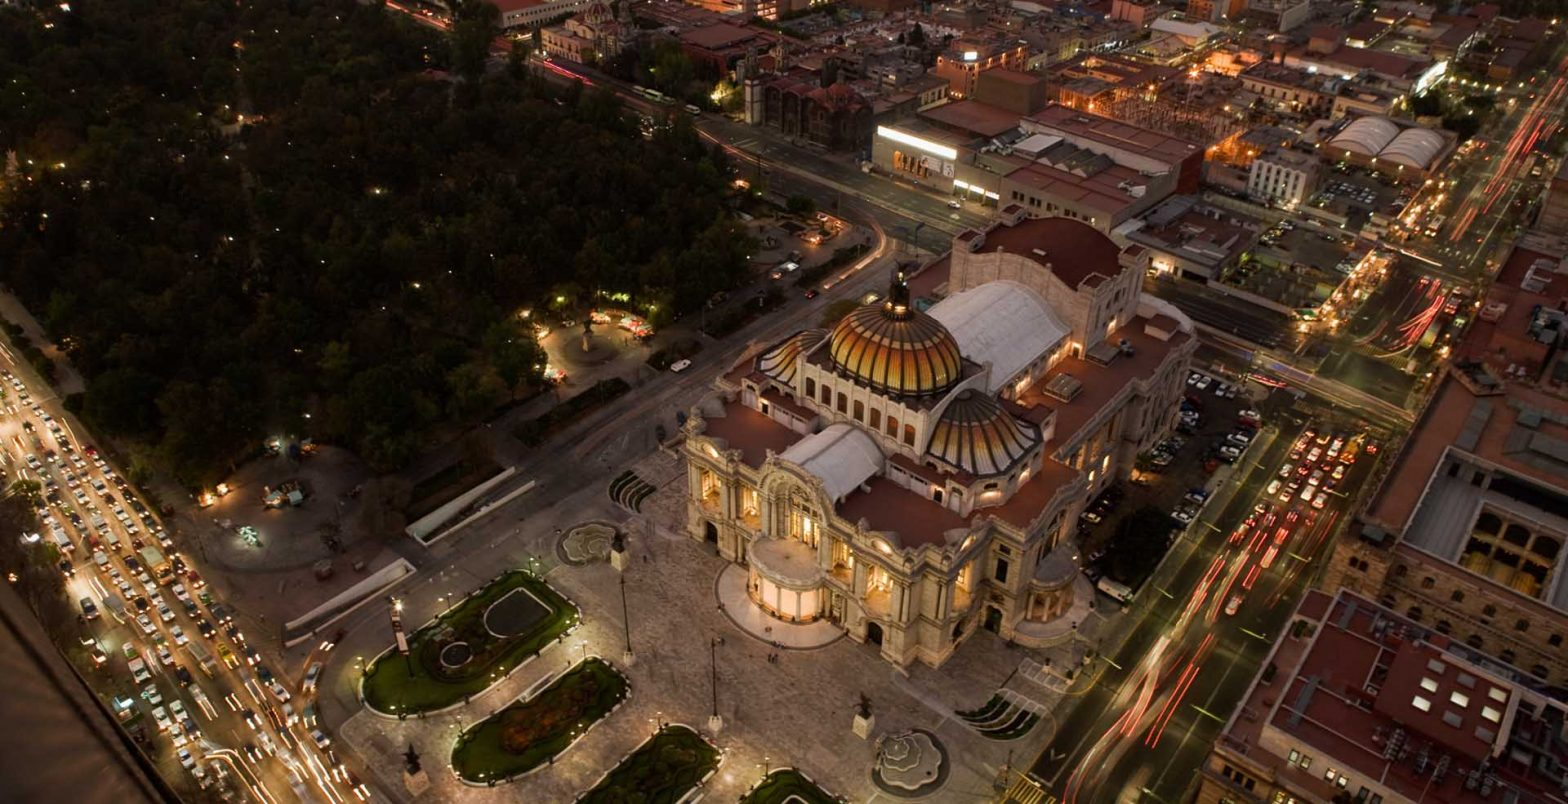 Palace of Bellas Artes